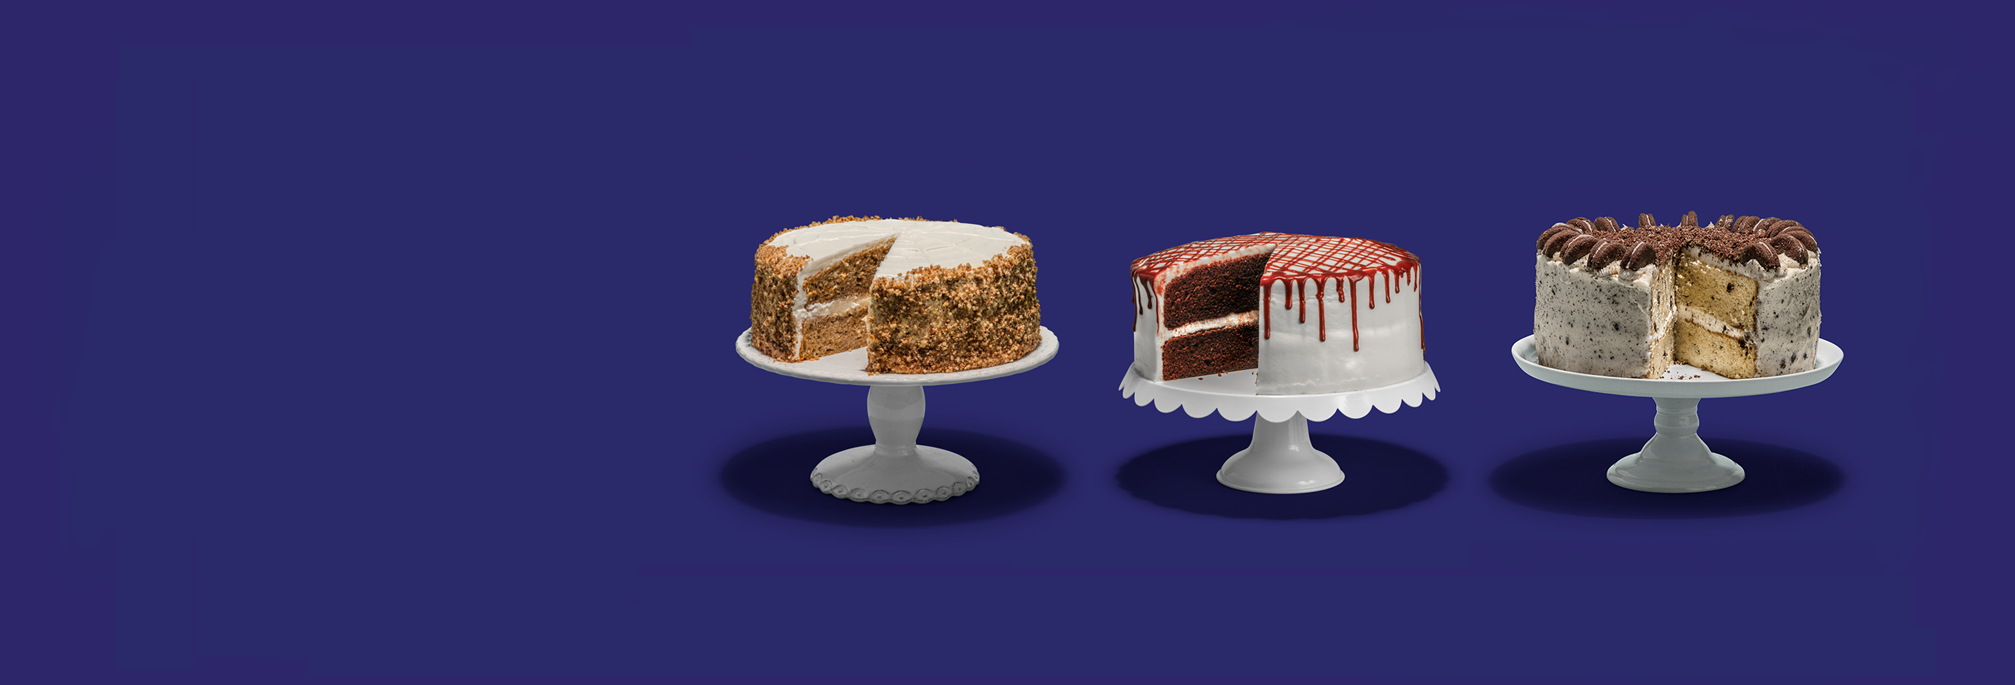 files/LitefulFoodsCakeHeader_small_right02.png